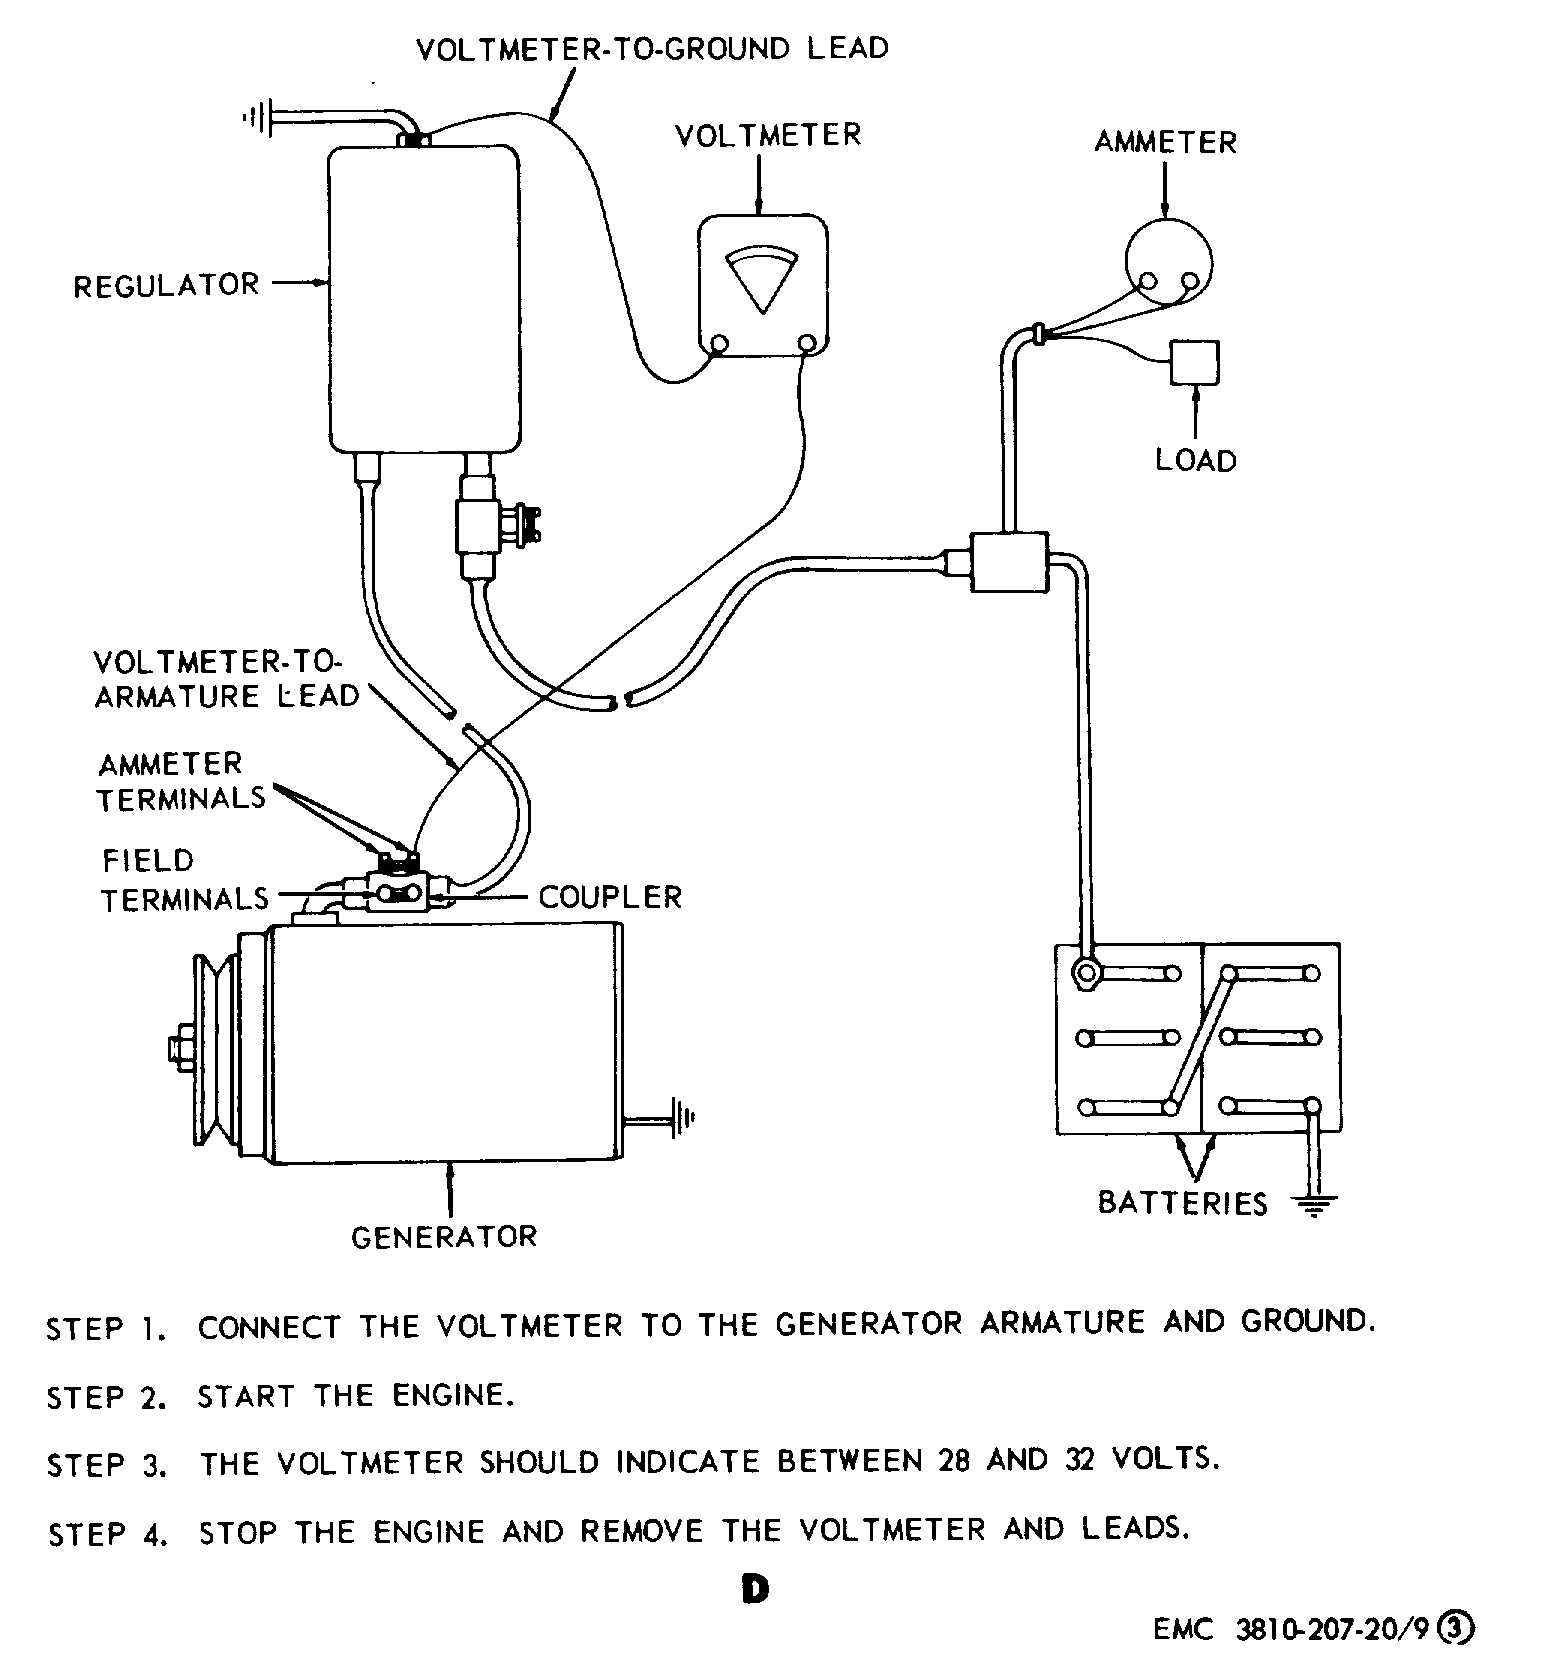 ford 4000 tractor ignition switch wiring diagram samsung gas dryer figure 9. generator regulator removal, adjustment, and test - cont tm-5-3810 ...